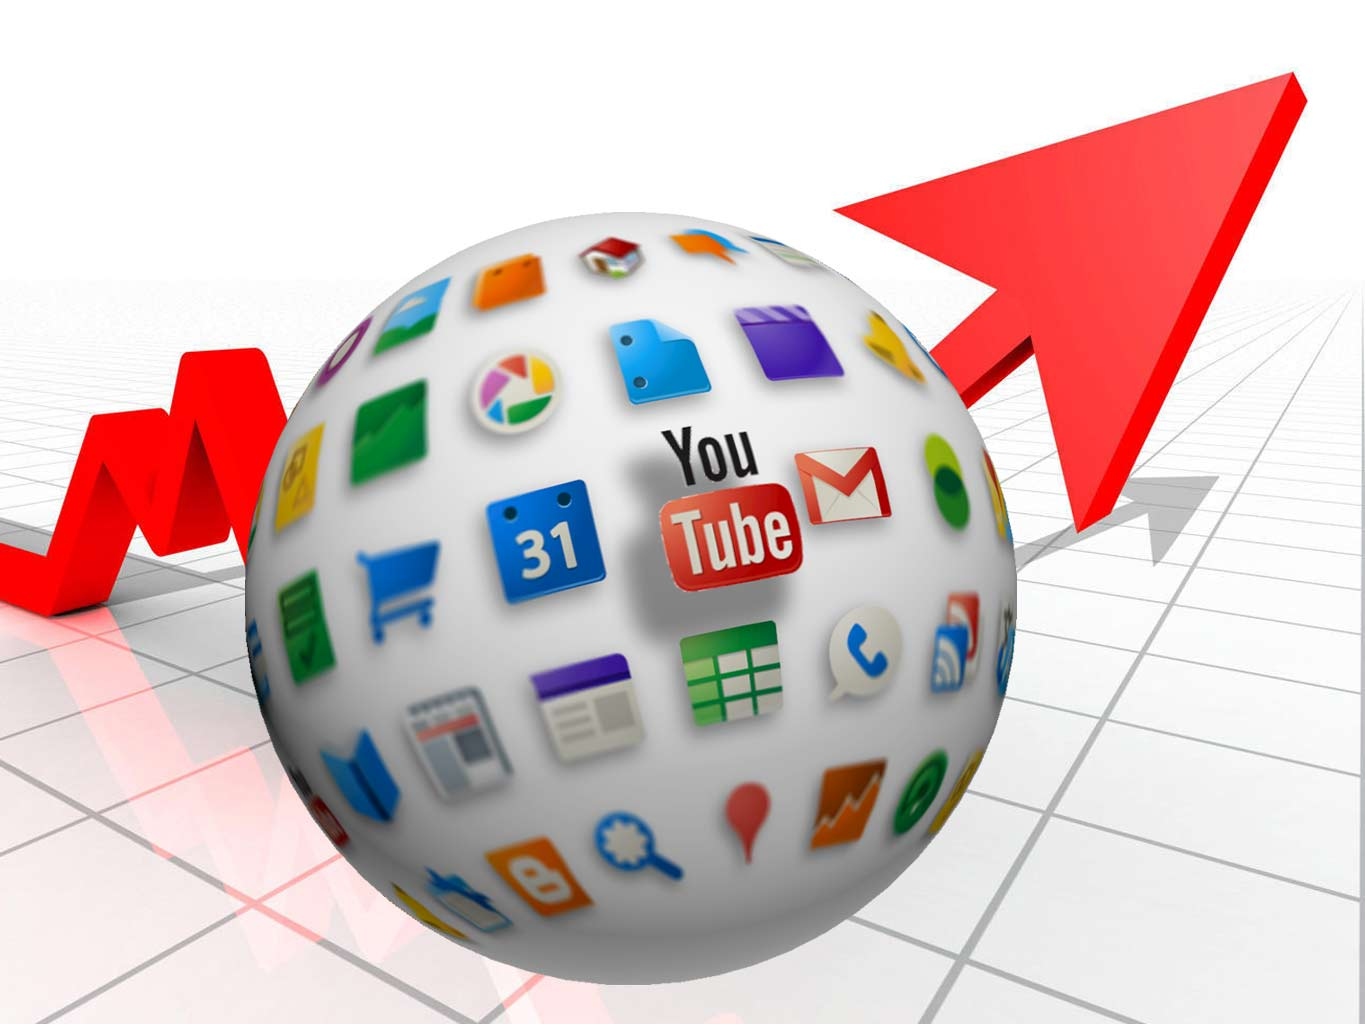 MD Blog El Futuro de la Compra Online E-Marketing  SEO sem Redes Sociales marketing online google estrategia